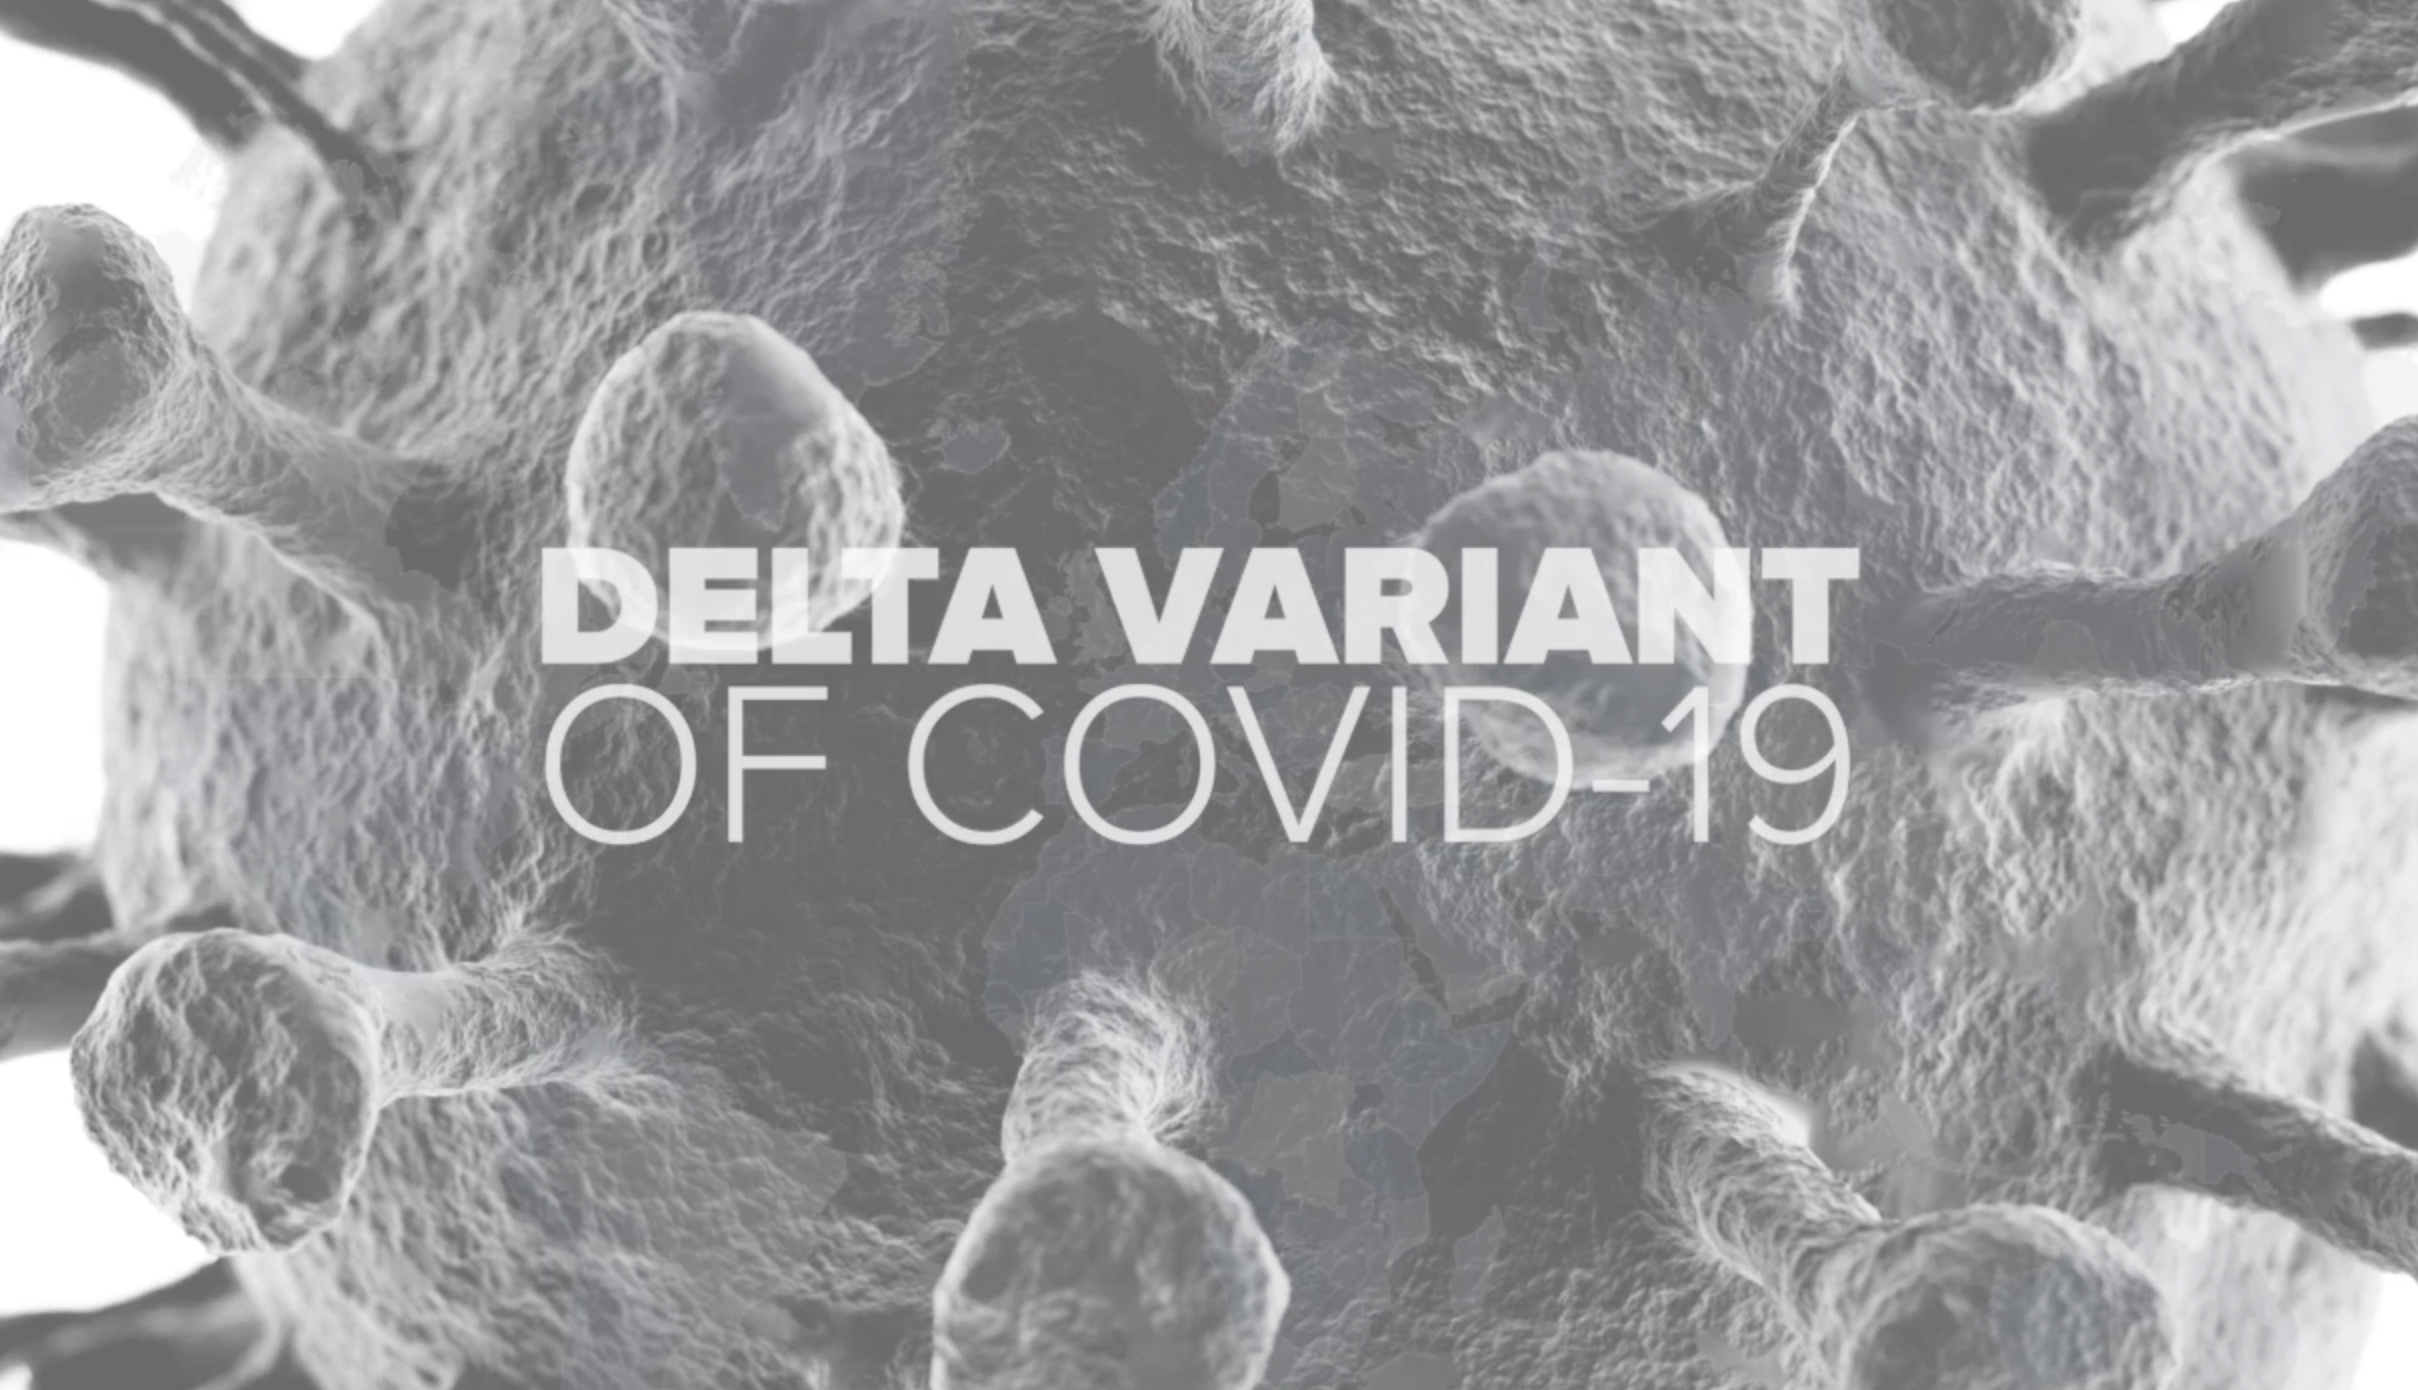 Number of delta variant COVID-19 cases expected to double every two weeks